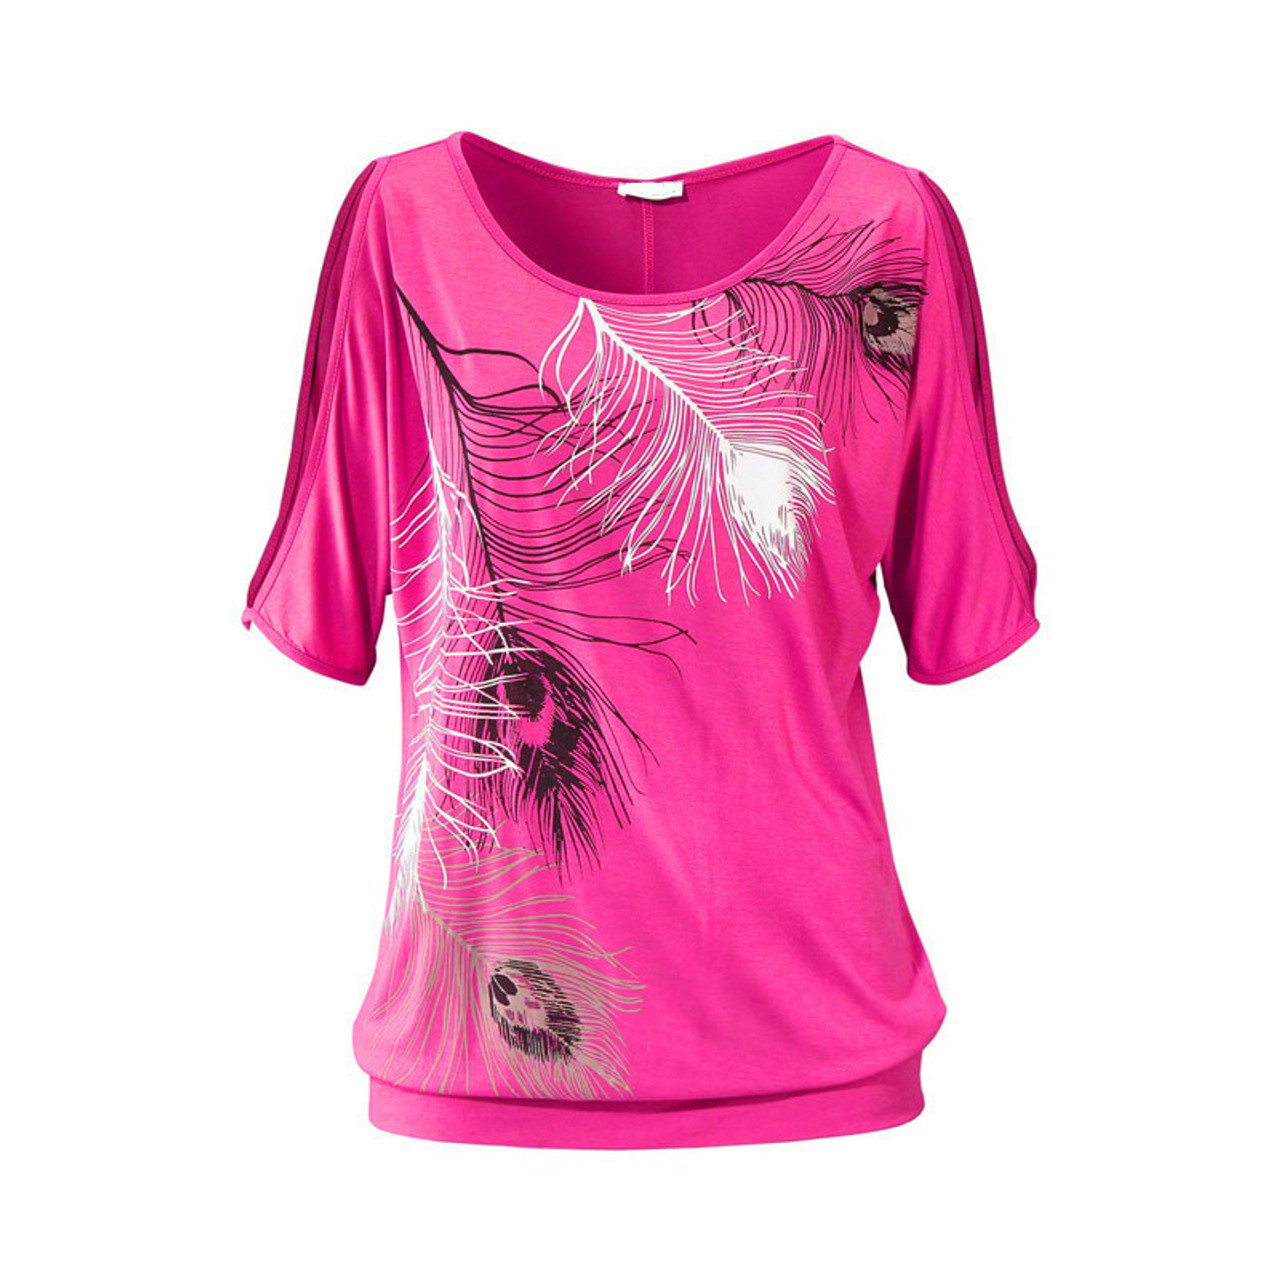 f91f2d0e ... Slit Sleeve Cold Shoulder Feather Print Women Casual Summer T Shirt Girl  2018 Tee Tshirt Loose ...